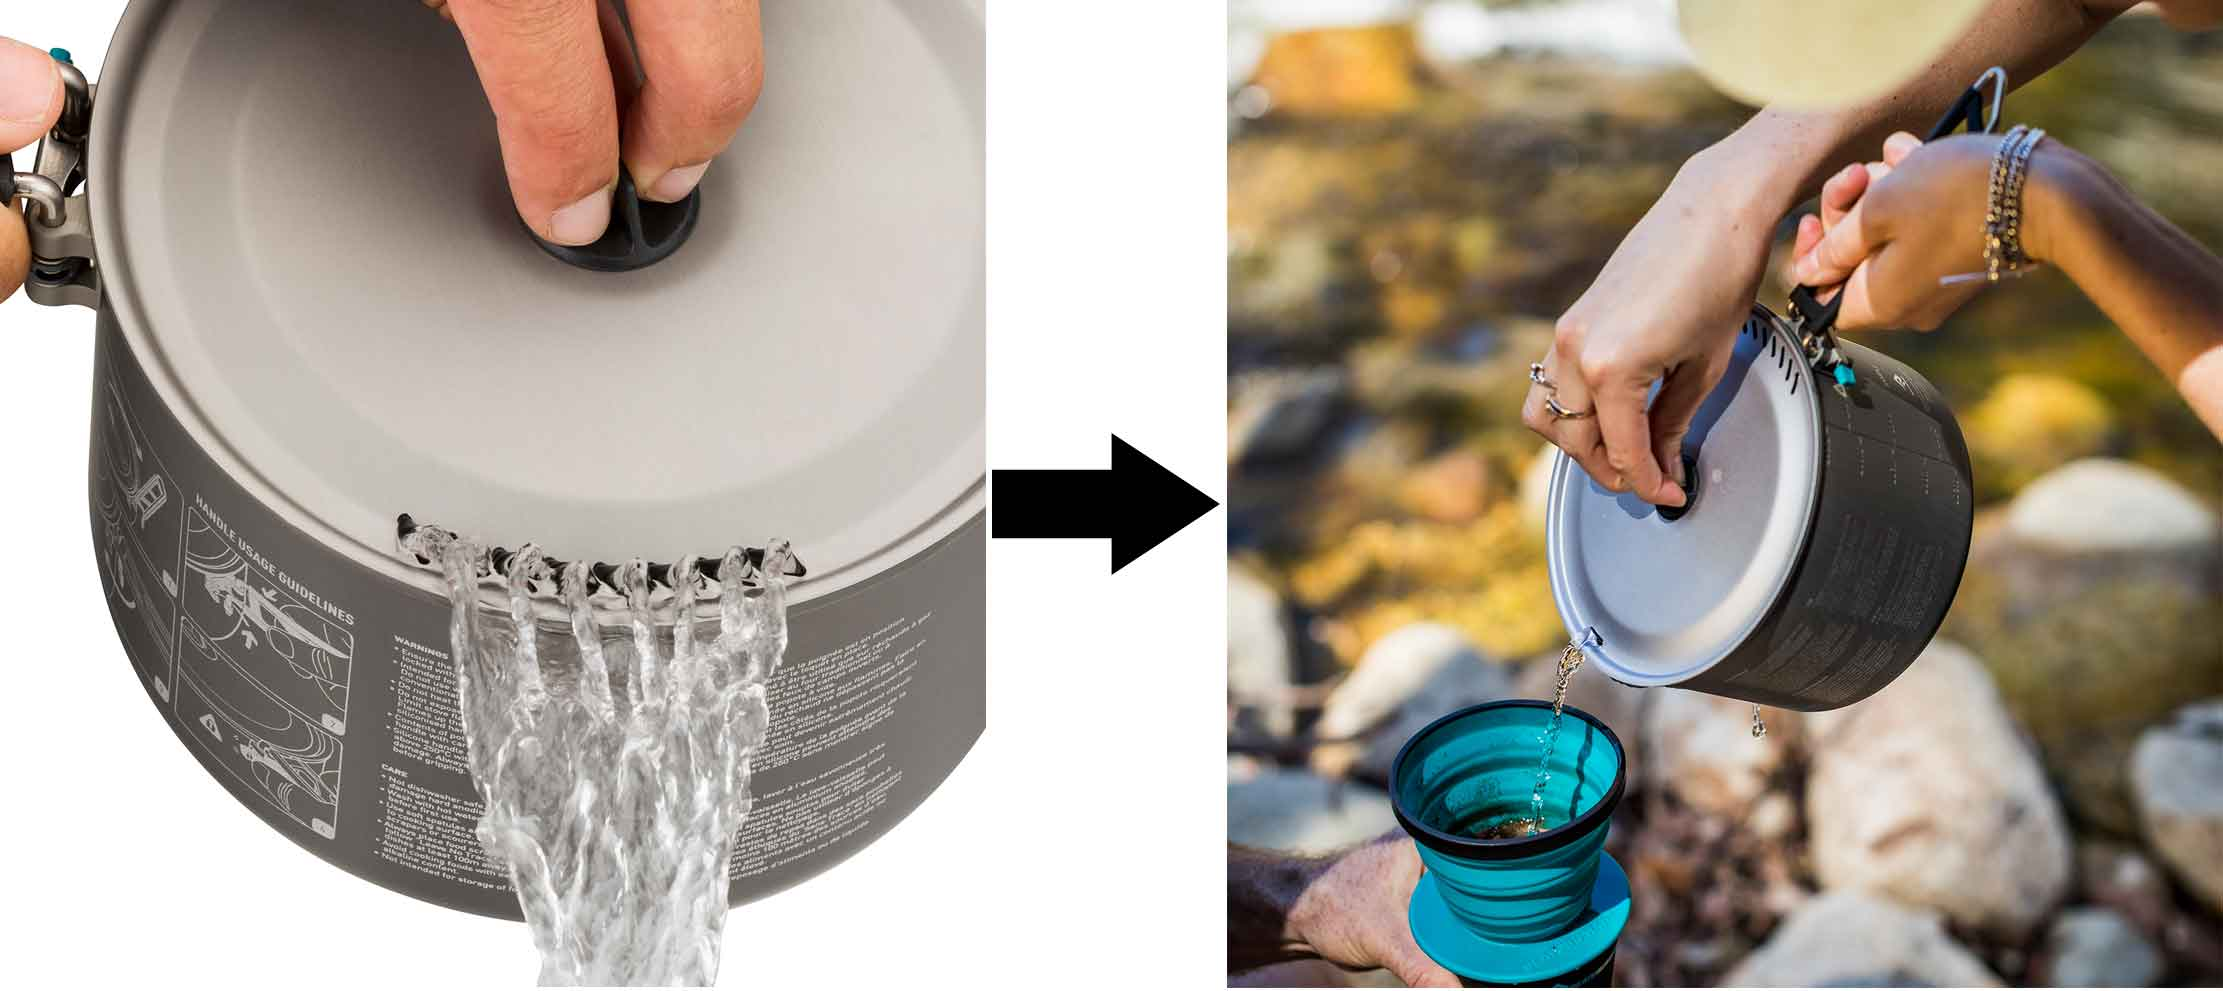 Sea To Summit Alpha pots strainer and pourer lid